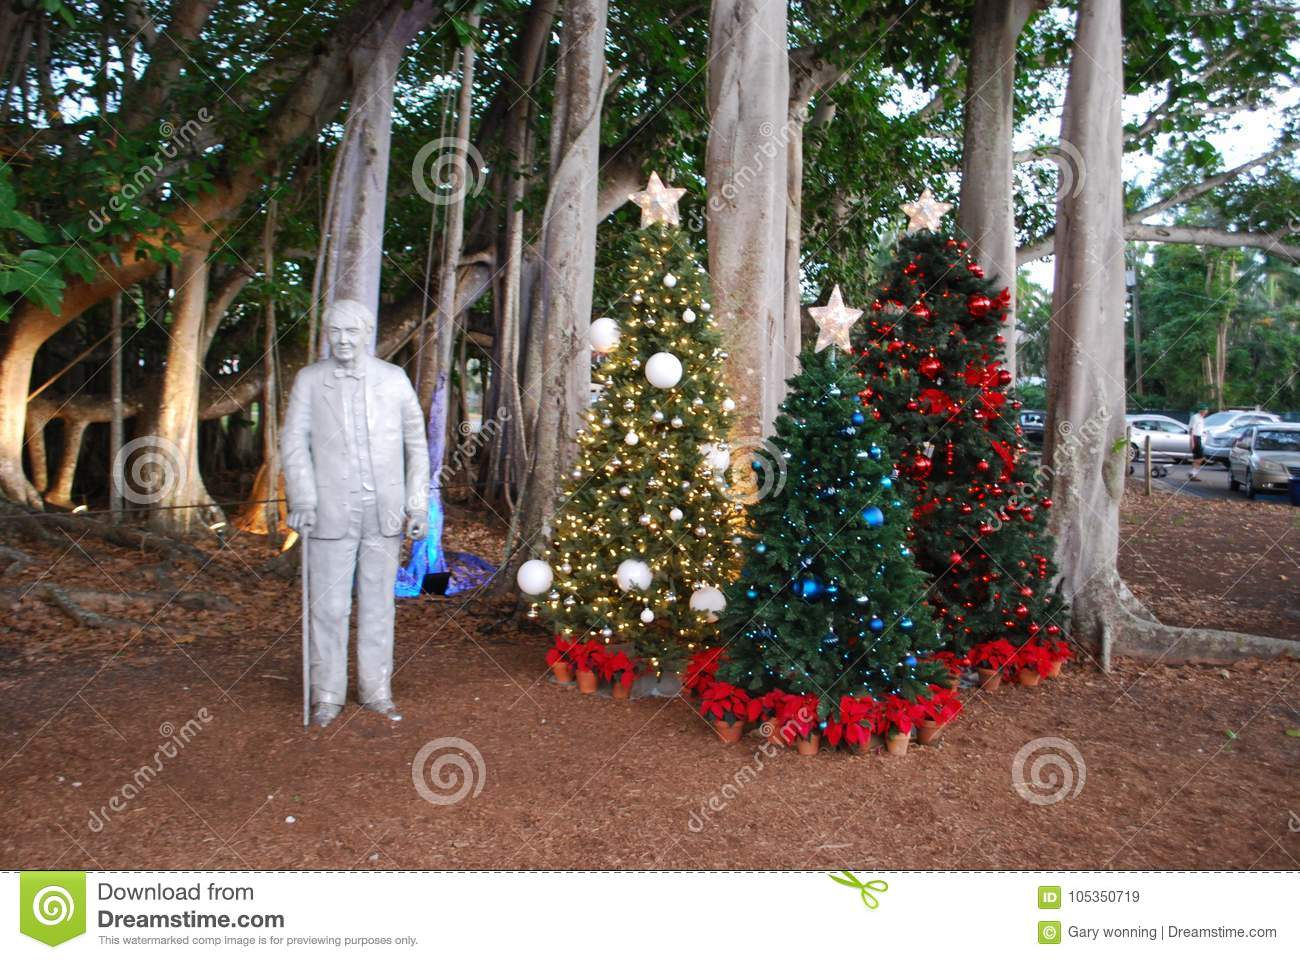 download statue of thomas edison and christmas decorations editorial stock image image of nature